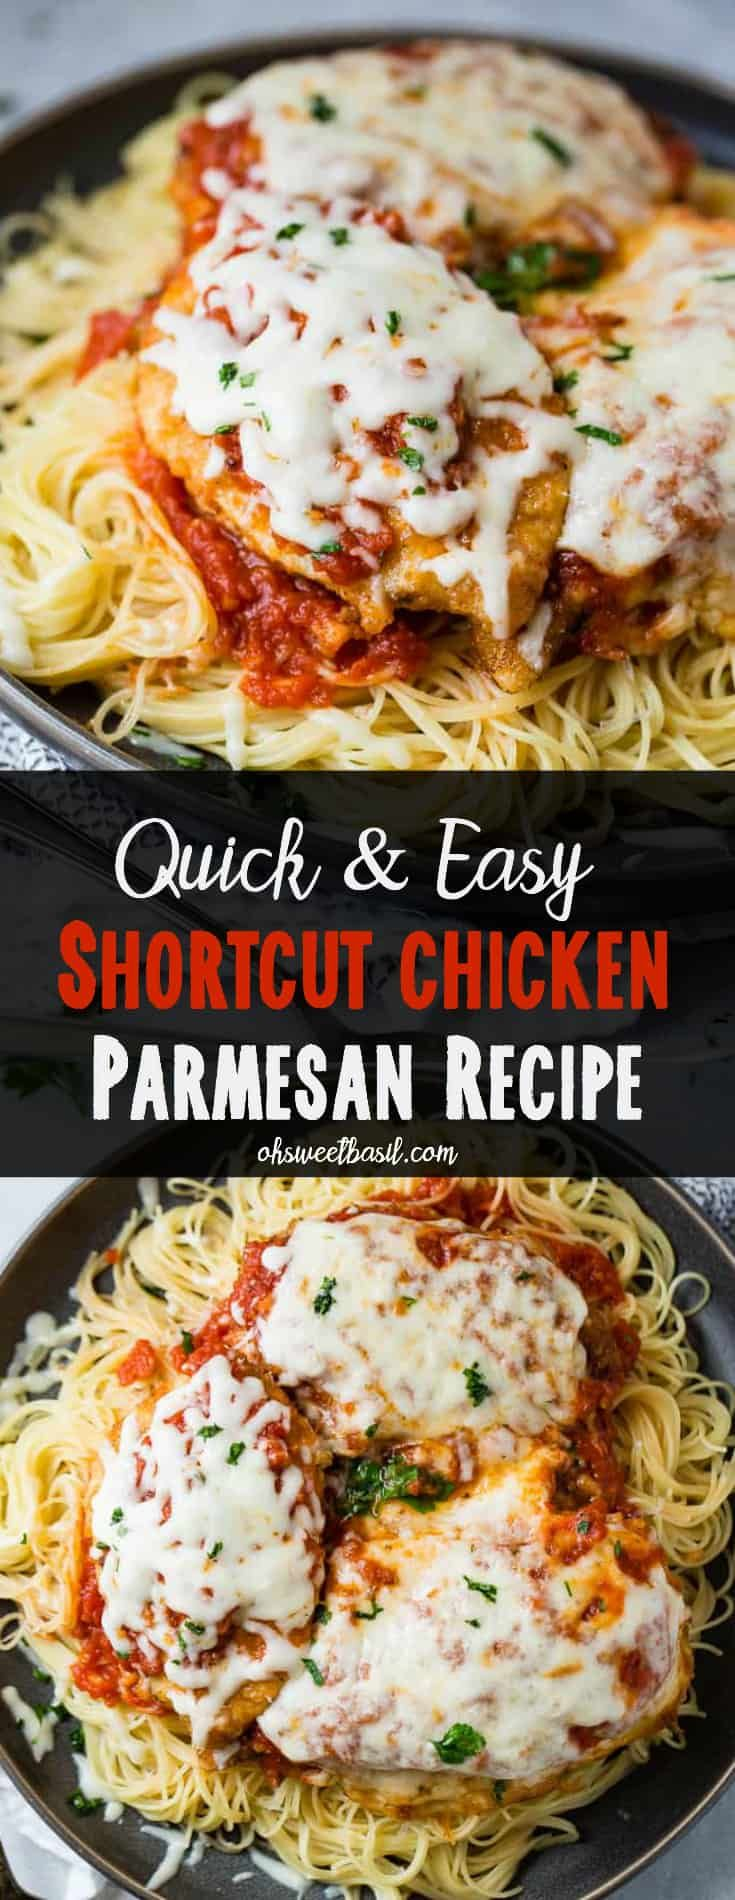 Quick and Easy Shortcut Chicken Parmesan Recipe - Oh Sweet Basil